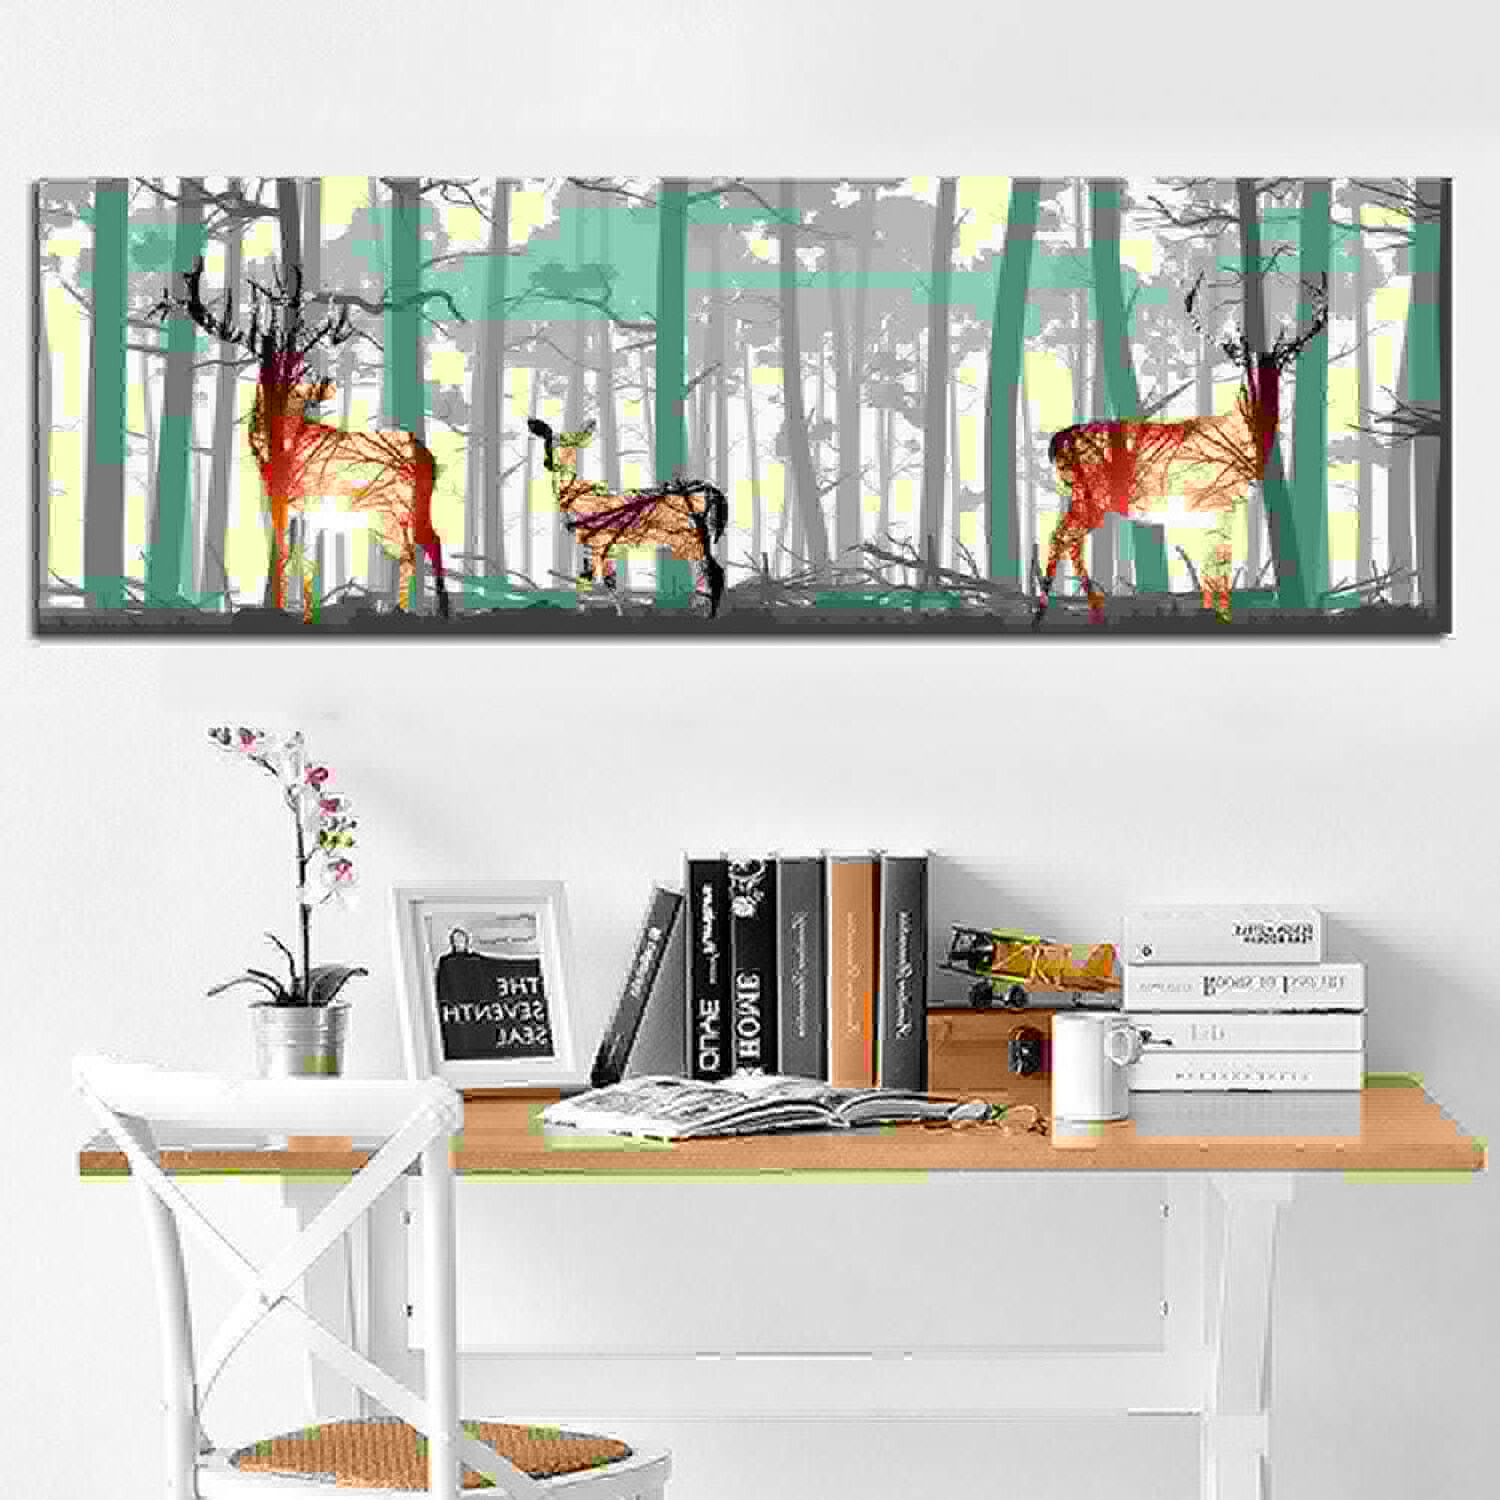 RQMQRL Abstract Deer Forest Bird Nordic Natural Art Print Picture Scandinavian Canvas Poster Wall Pictures For Living Room Home Decor